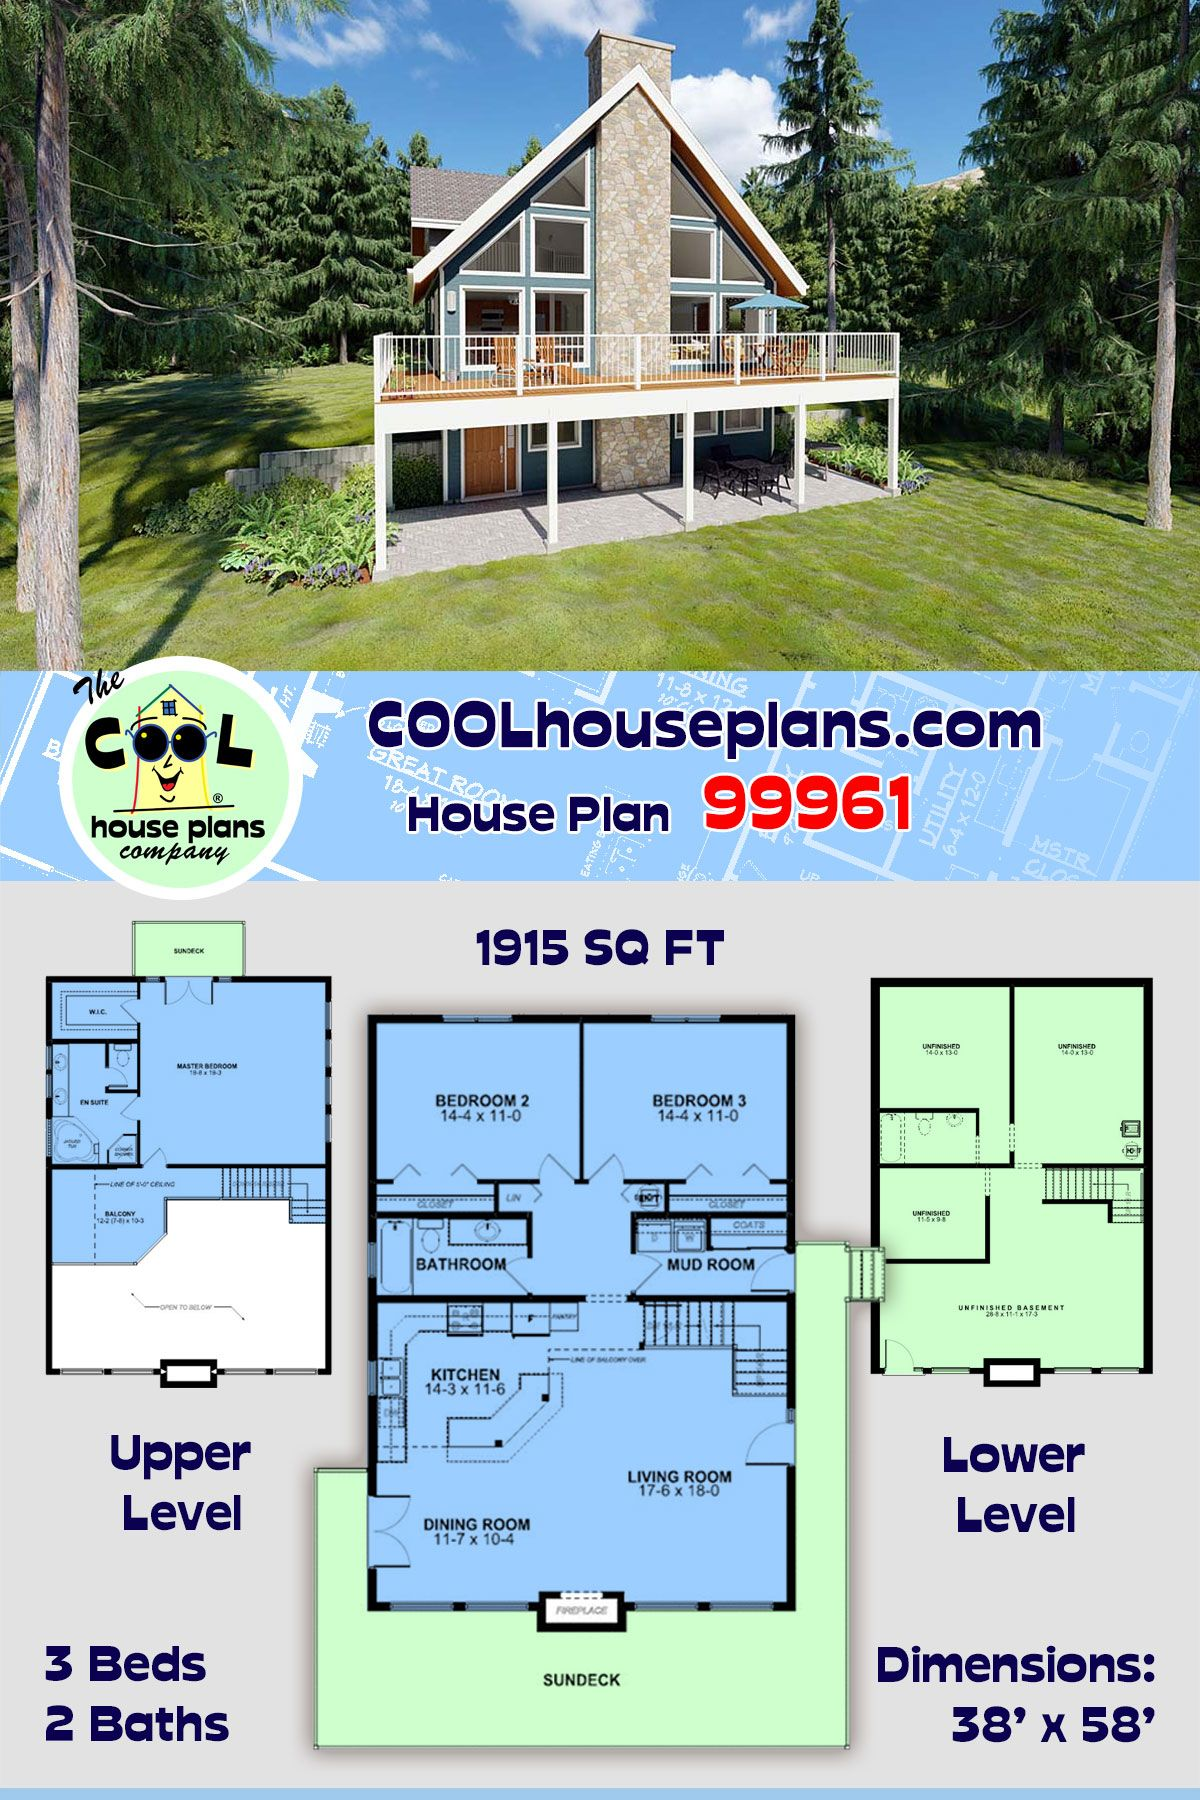 Traditional Style House Plan 99961 With 3 Bed 2 Bath In 2020 Lake House Plans Sloping Lot House Plan House Plans